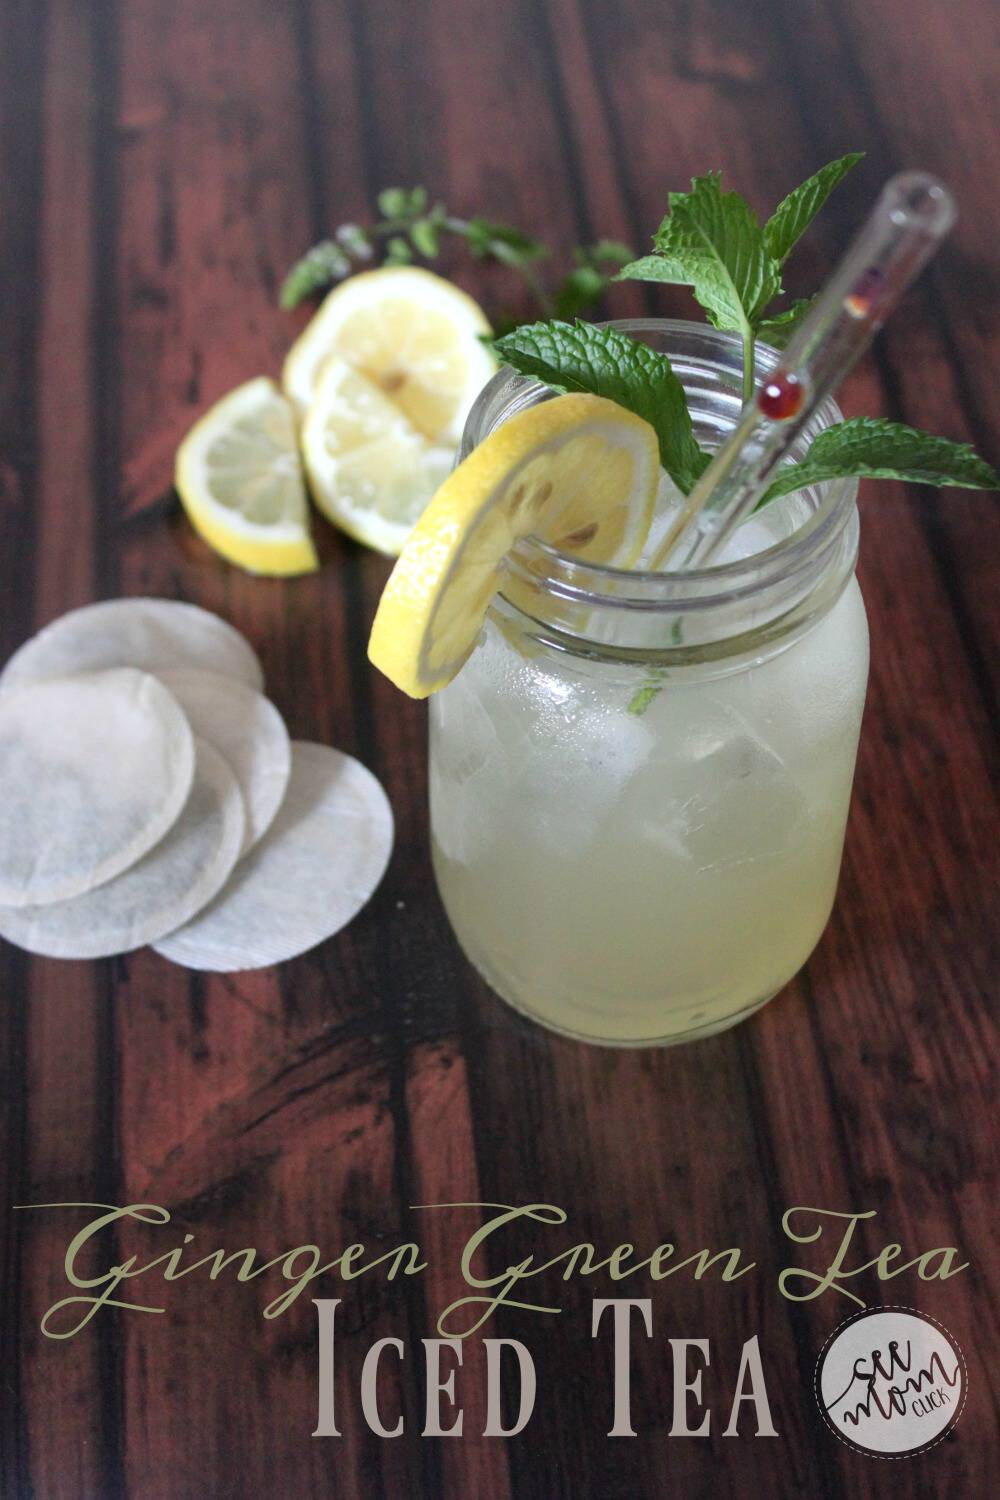 This Ginger Green Tea Iced Tea recipe is really easy to make and so refreshing. It's packed with healthful ingredients and delicious flavor. A perfect summer drink or afternoon pick-me-up!